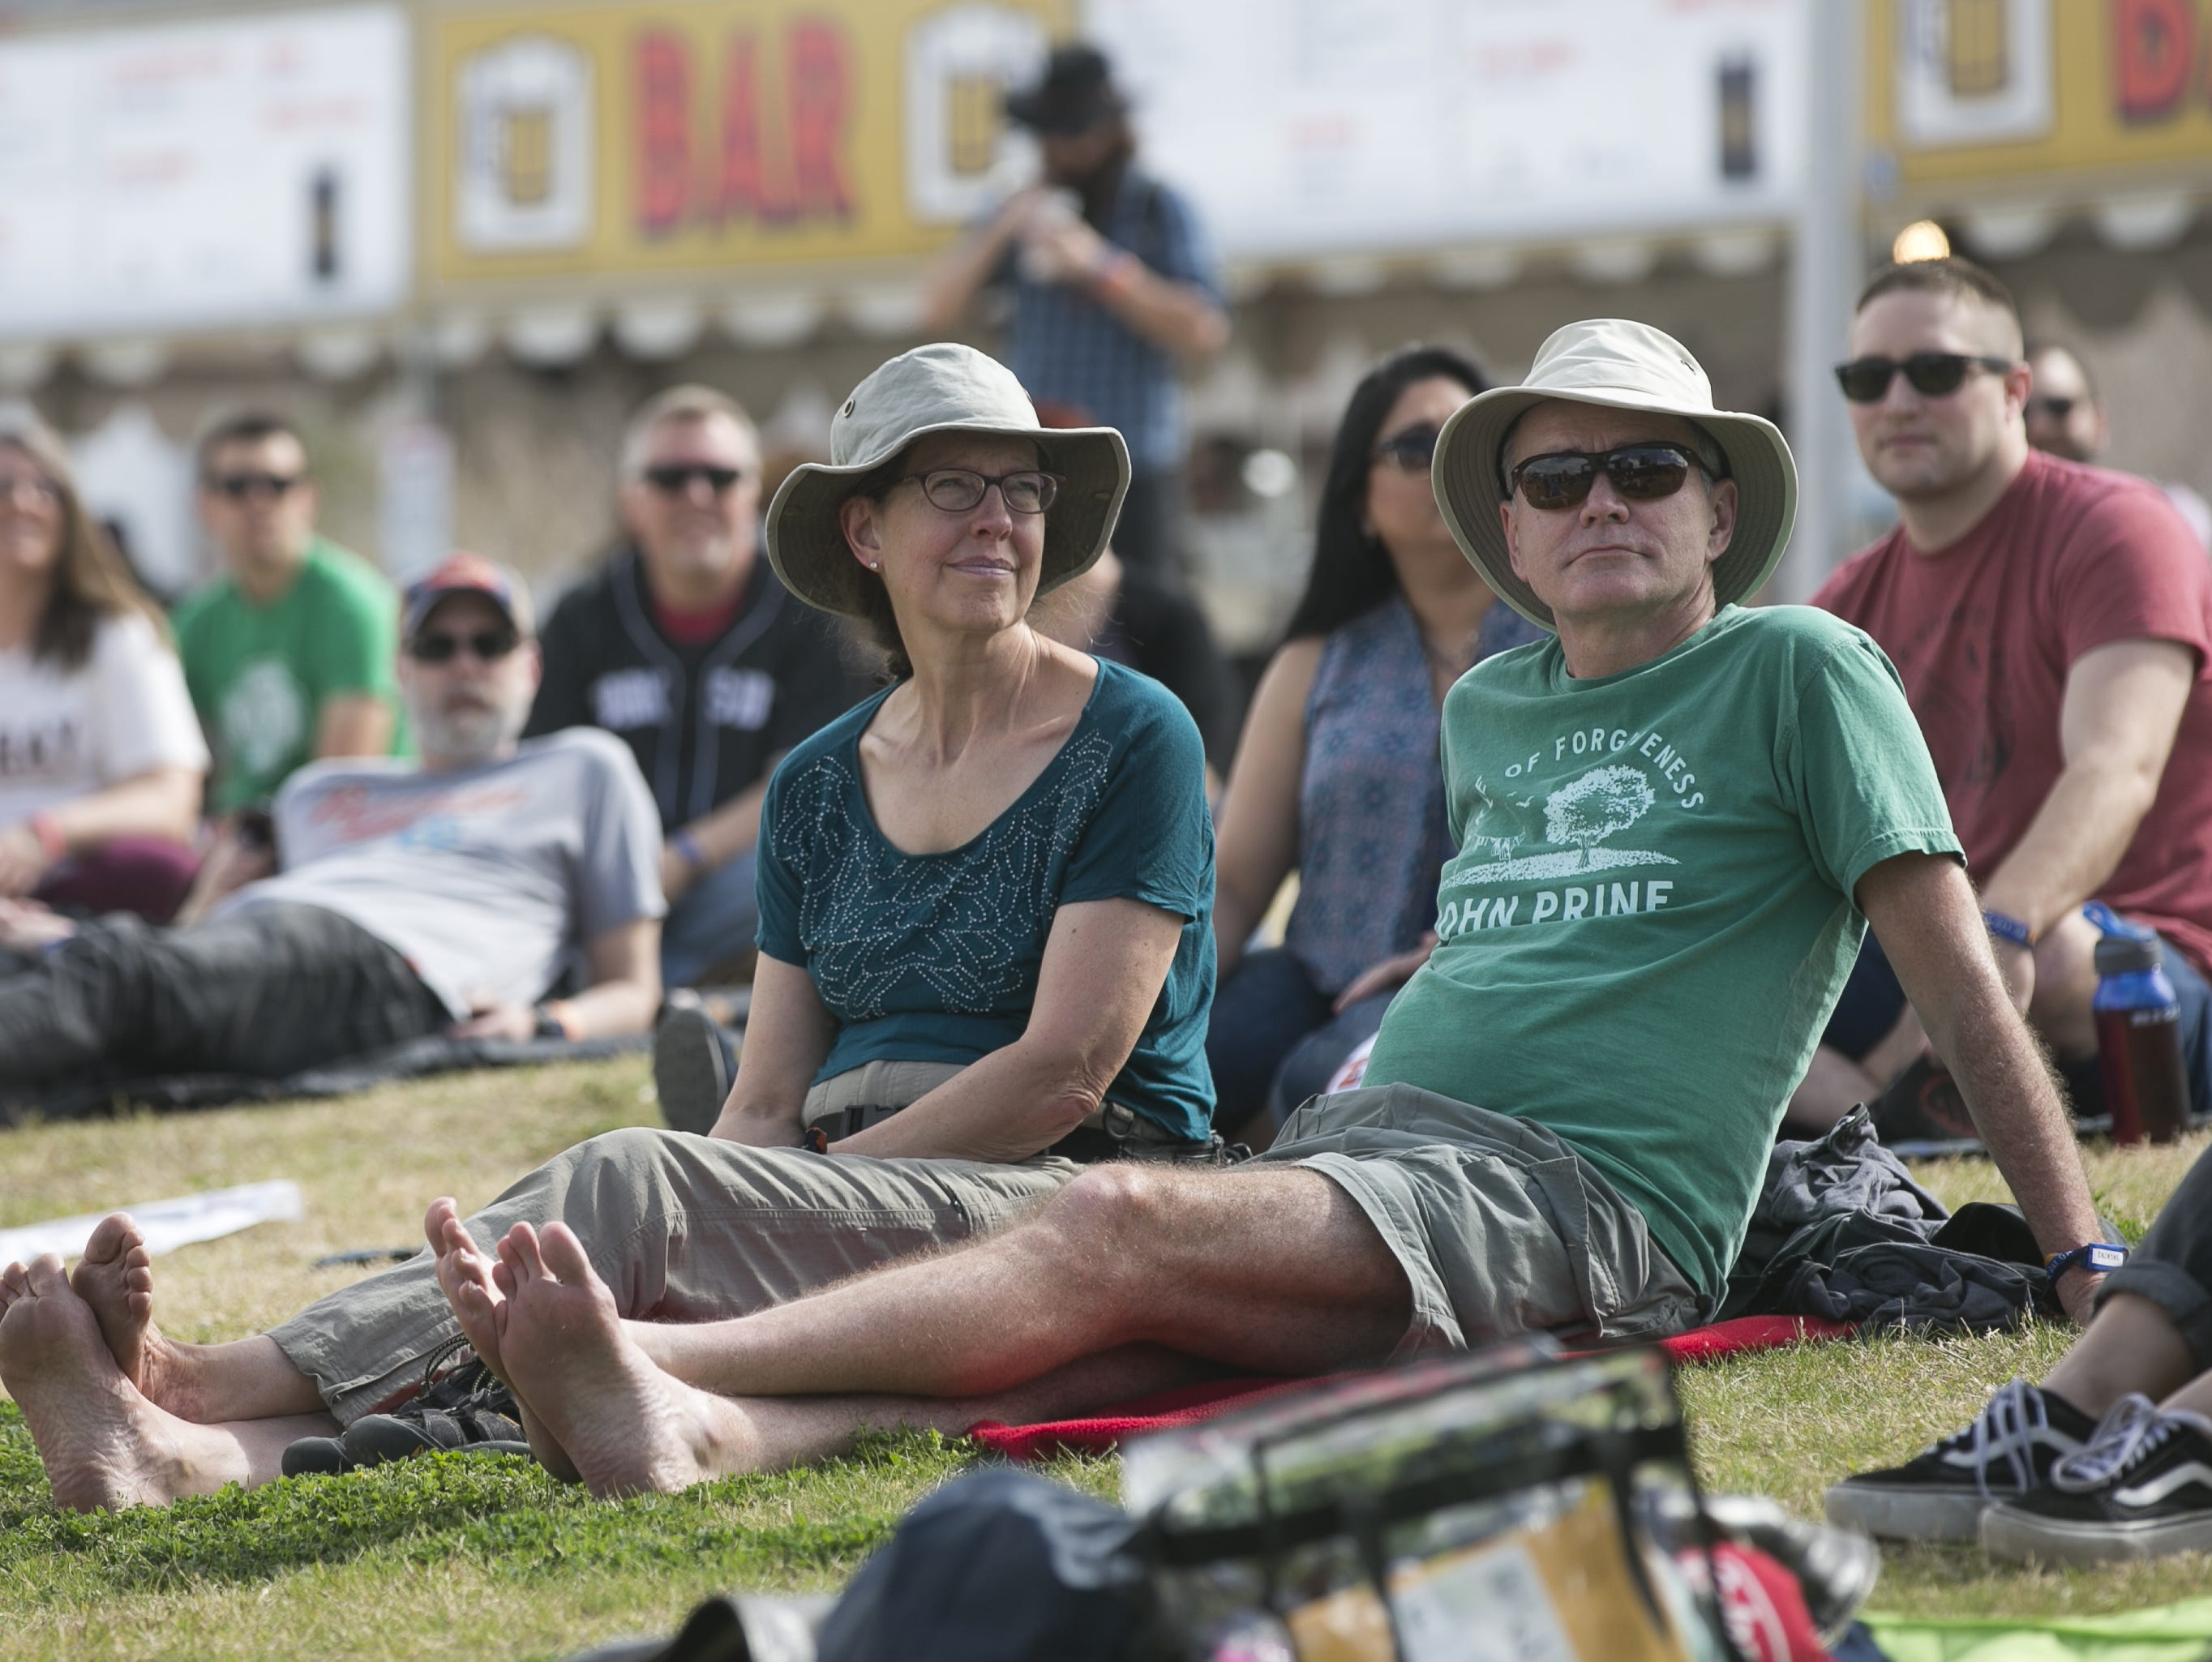 Beth Young (left) and Don Young (right) watch Dorothy perform at the Innings Festival at Tempe Beach Park on Saturday, March 2, 2019.